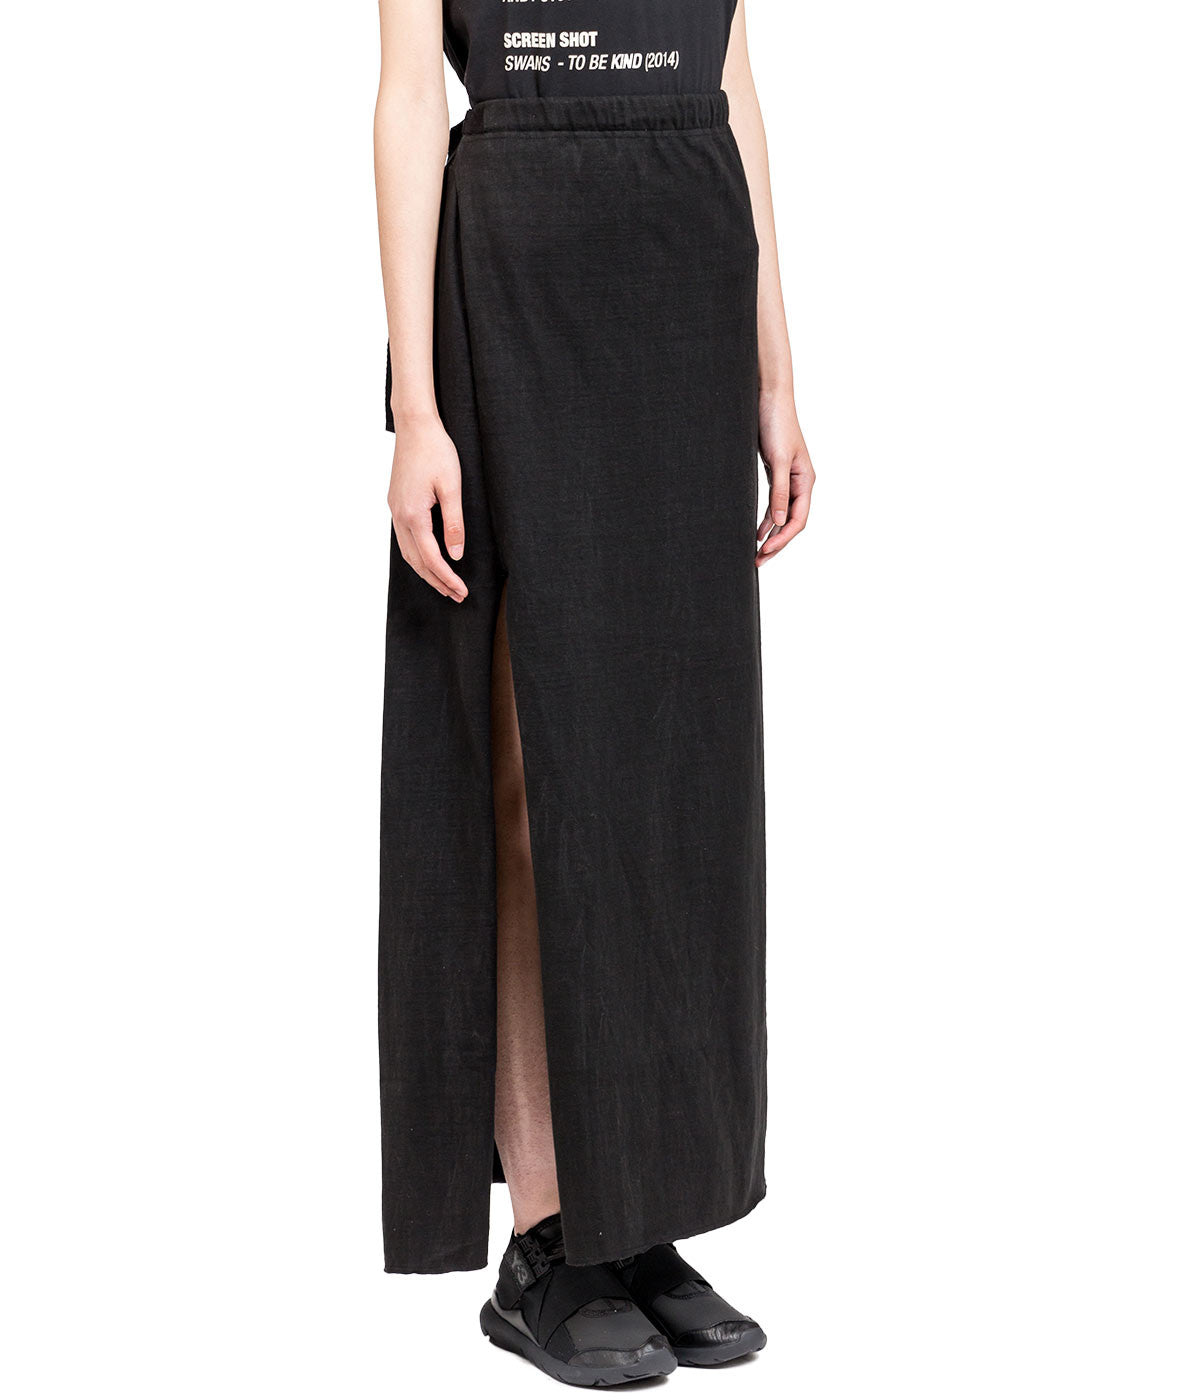 Black Grain Jersey Skirt